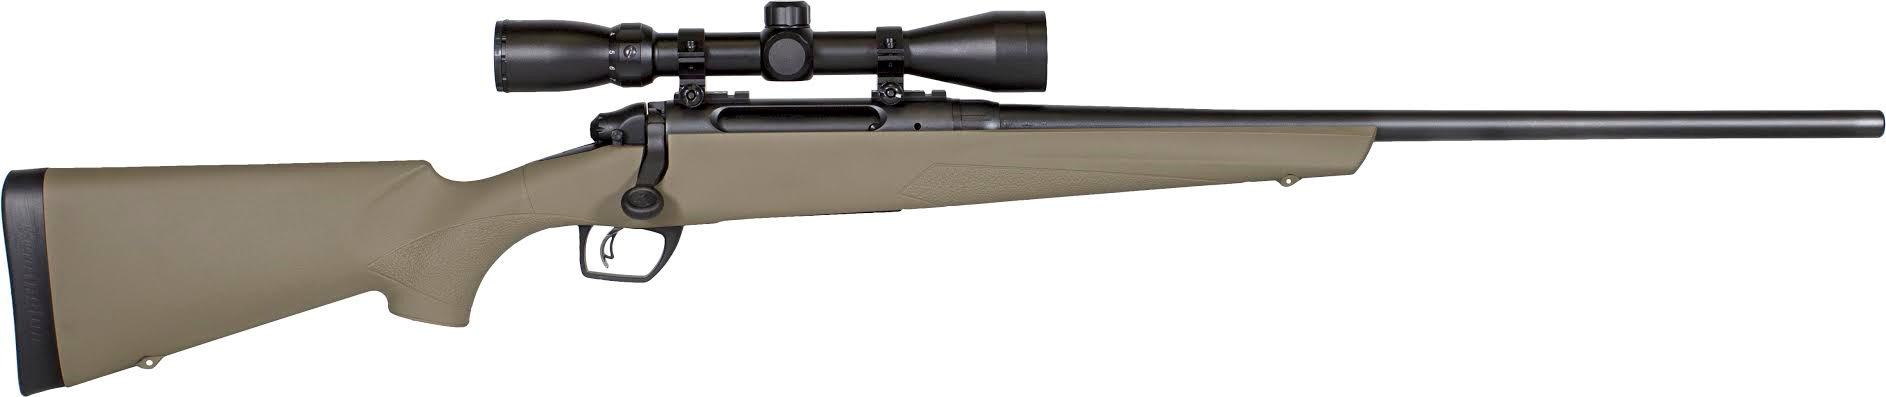 Remington 783 FDE 30/06 SPRG W/ 3-9x40 Scope